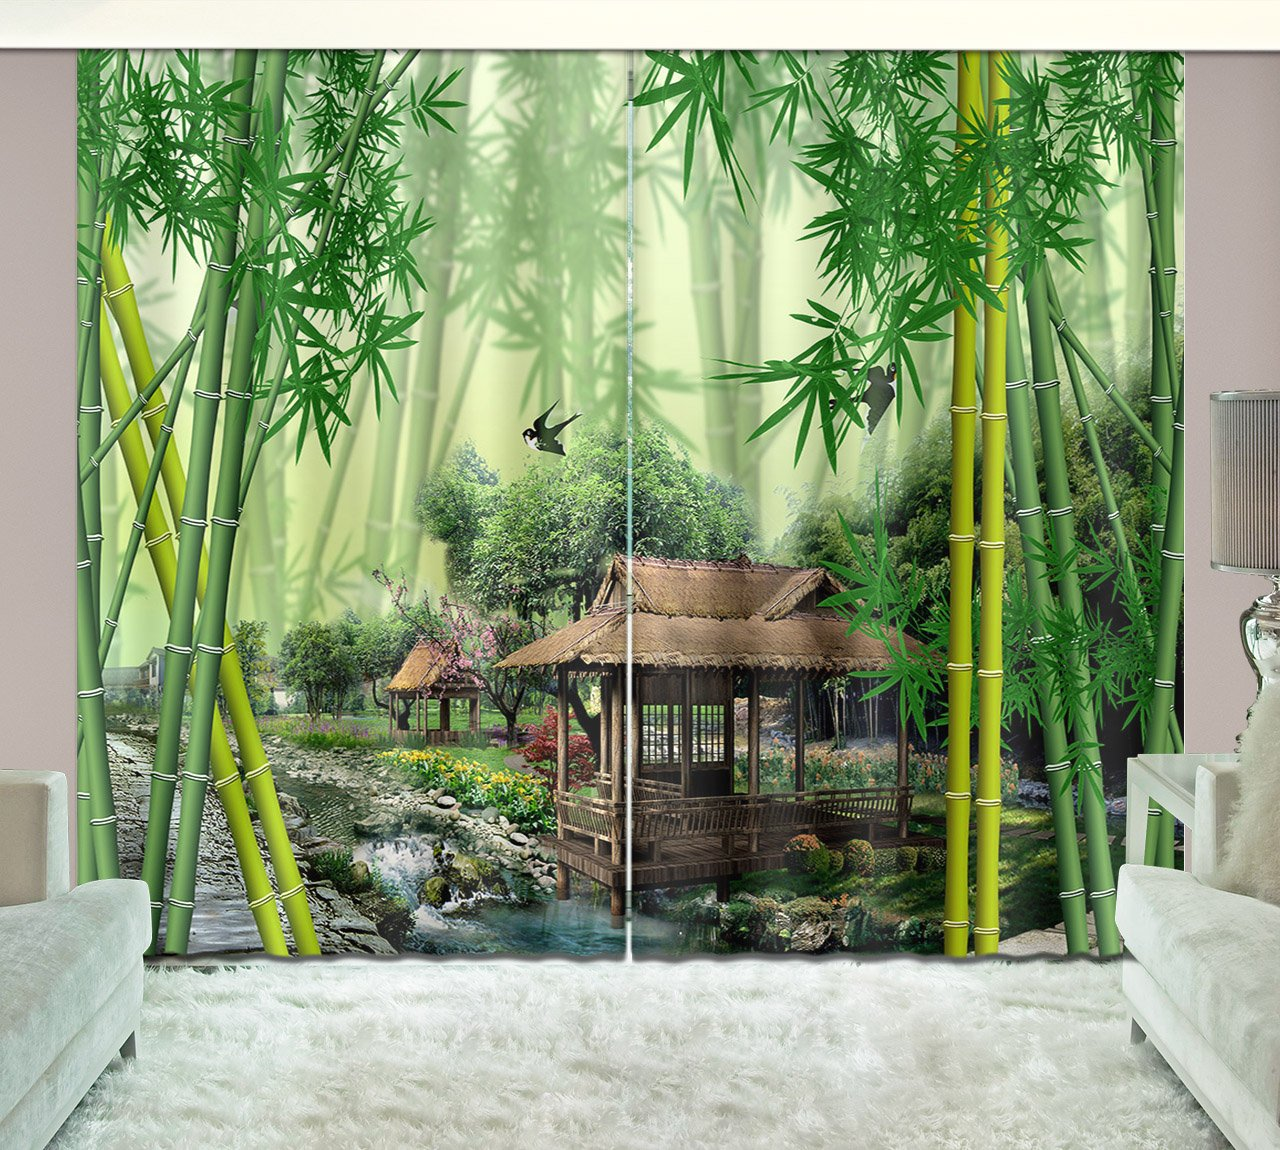 Bamboo Forest Decor Curtains By LB,Green Bamboo Tree and Pavilion 3D Window Treatment Spa Zen Curtain Living Room Bedroom Window Drapes 2 Panels Set,104W x 63L Inches by LB (Image #3)